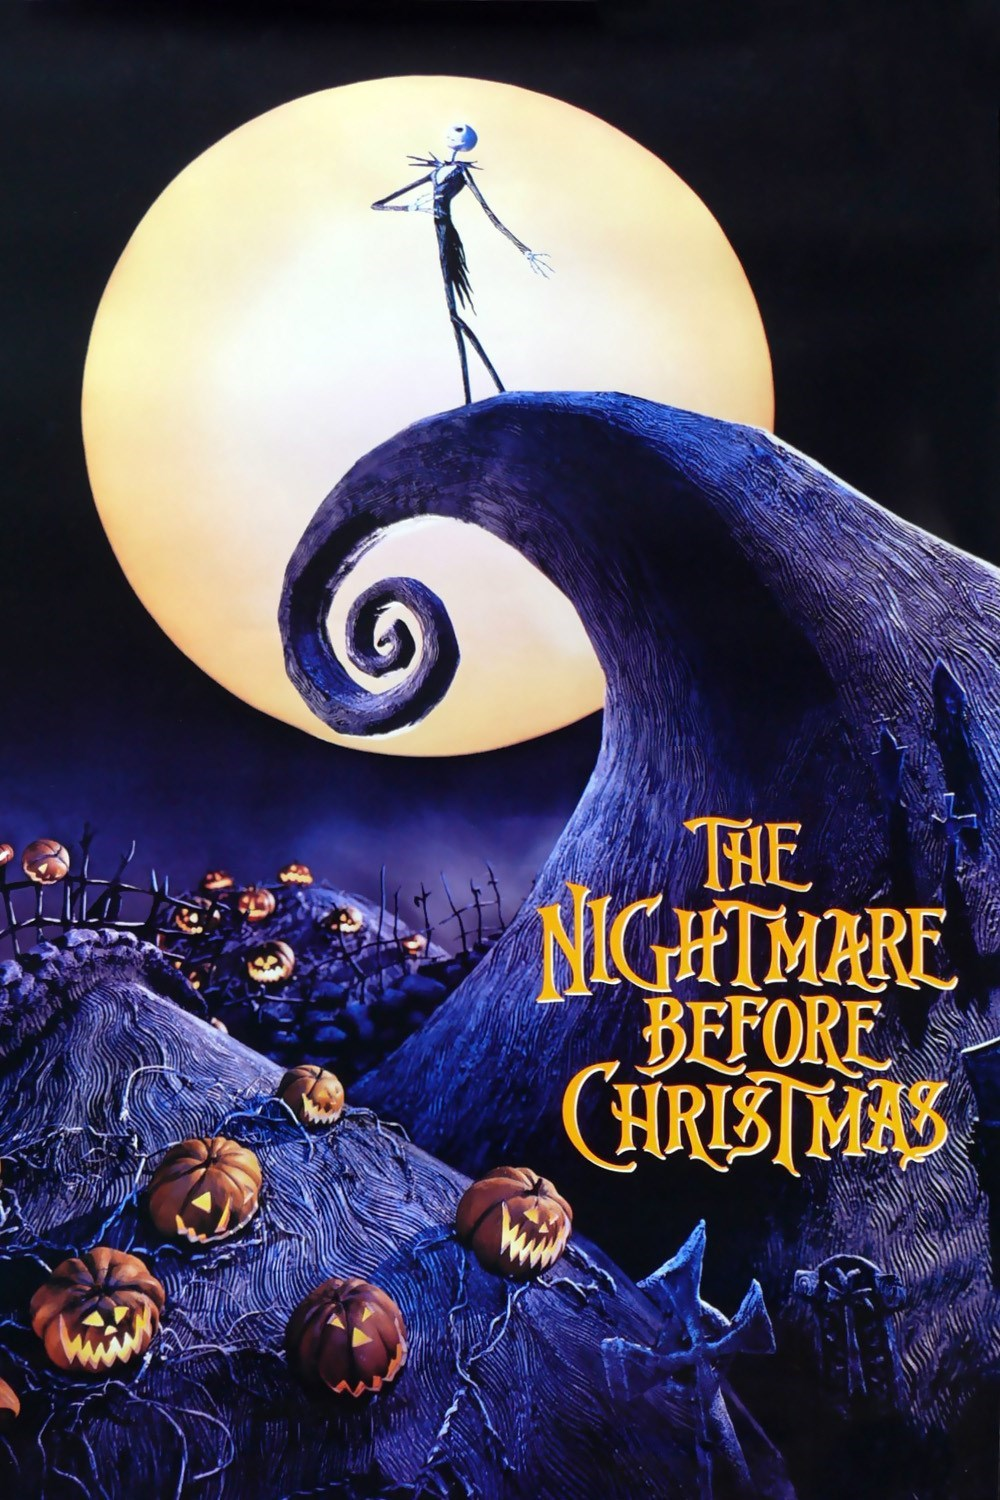 Atlanta Symphony Orchestra invites local to see Tim Burton classic ...